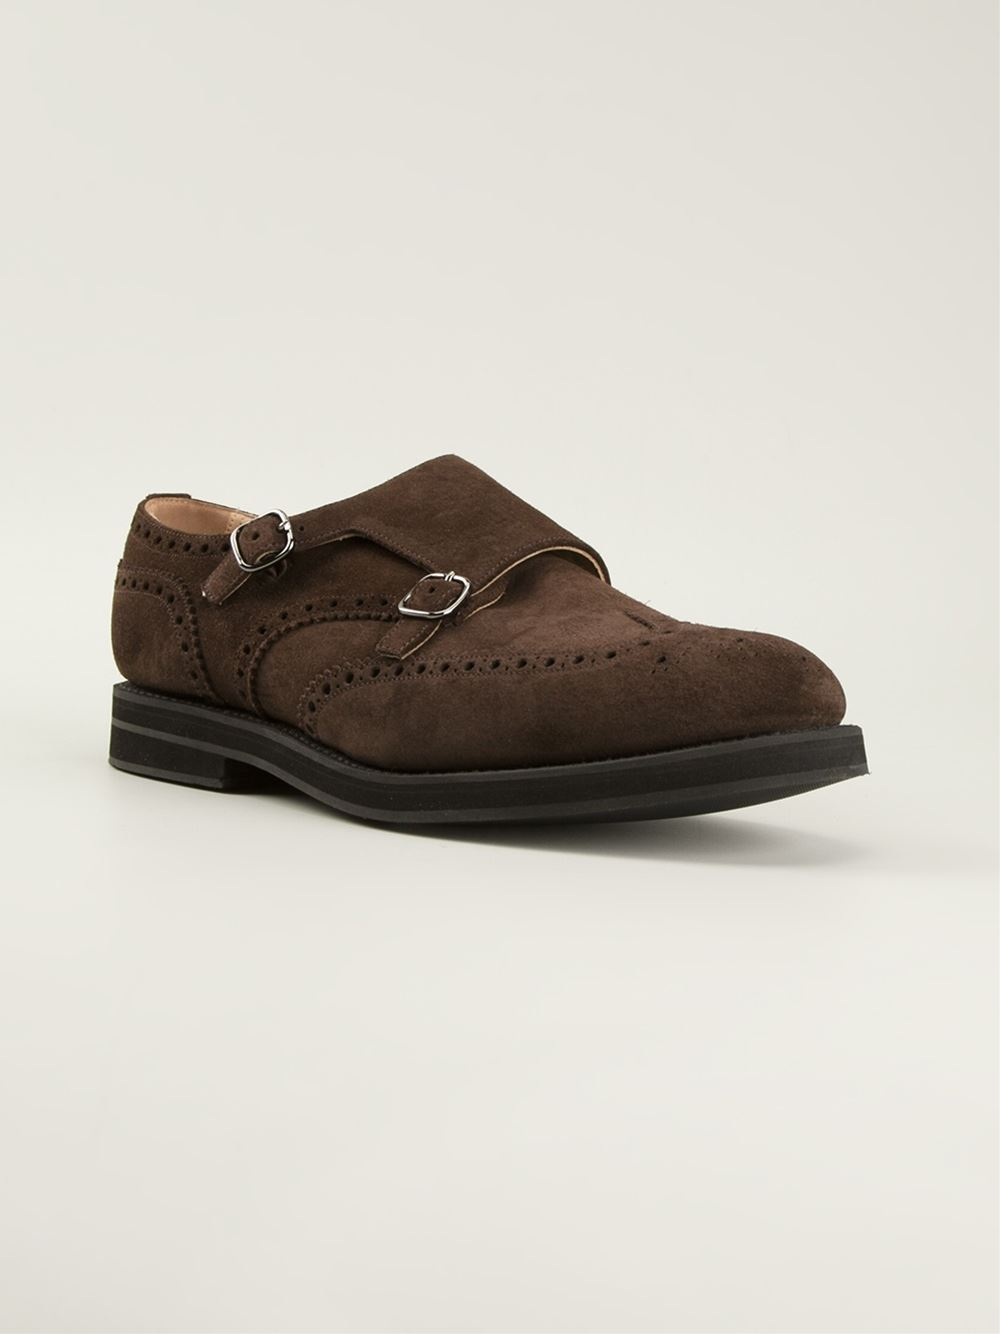 Lyst - Church S  Kelby  Monk Shoes in Brown for Men c7575586b13